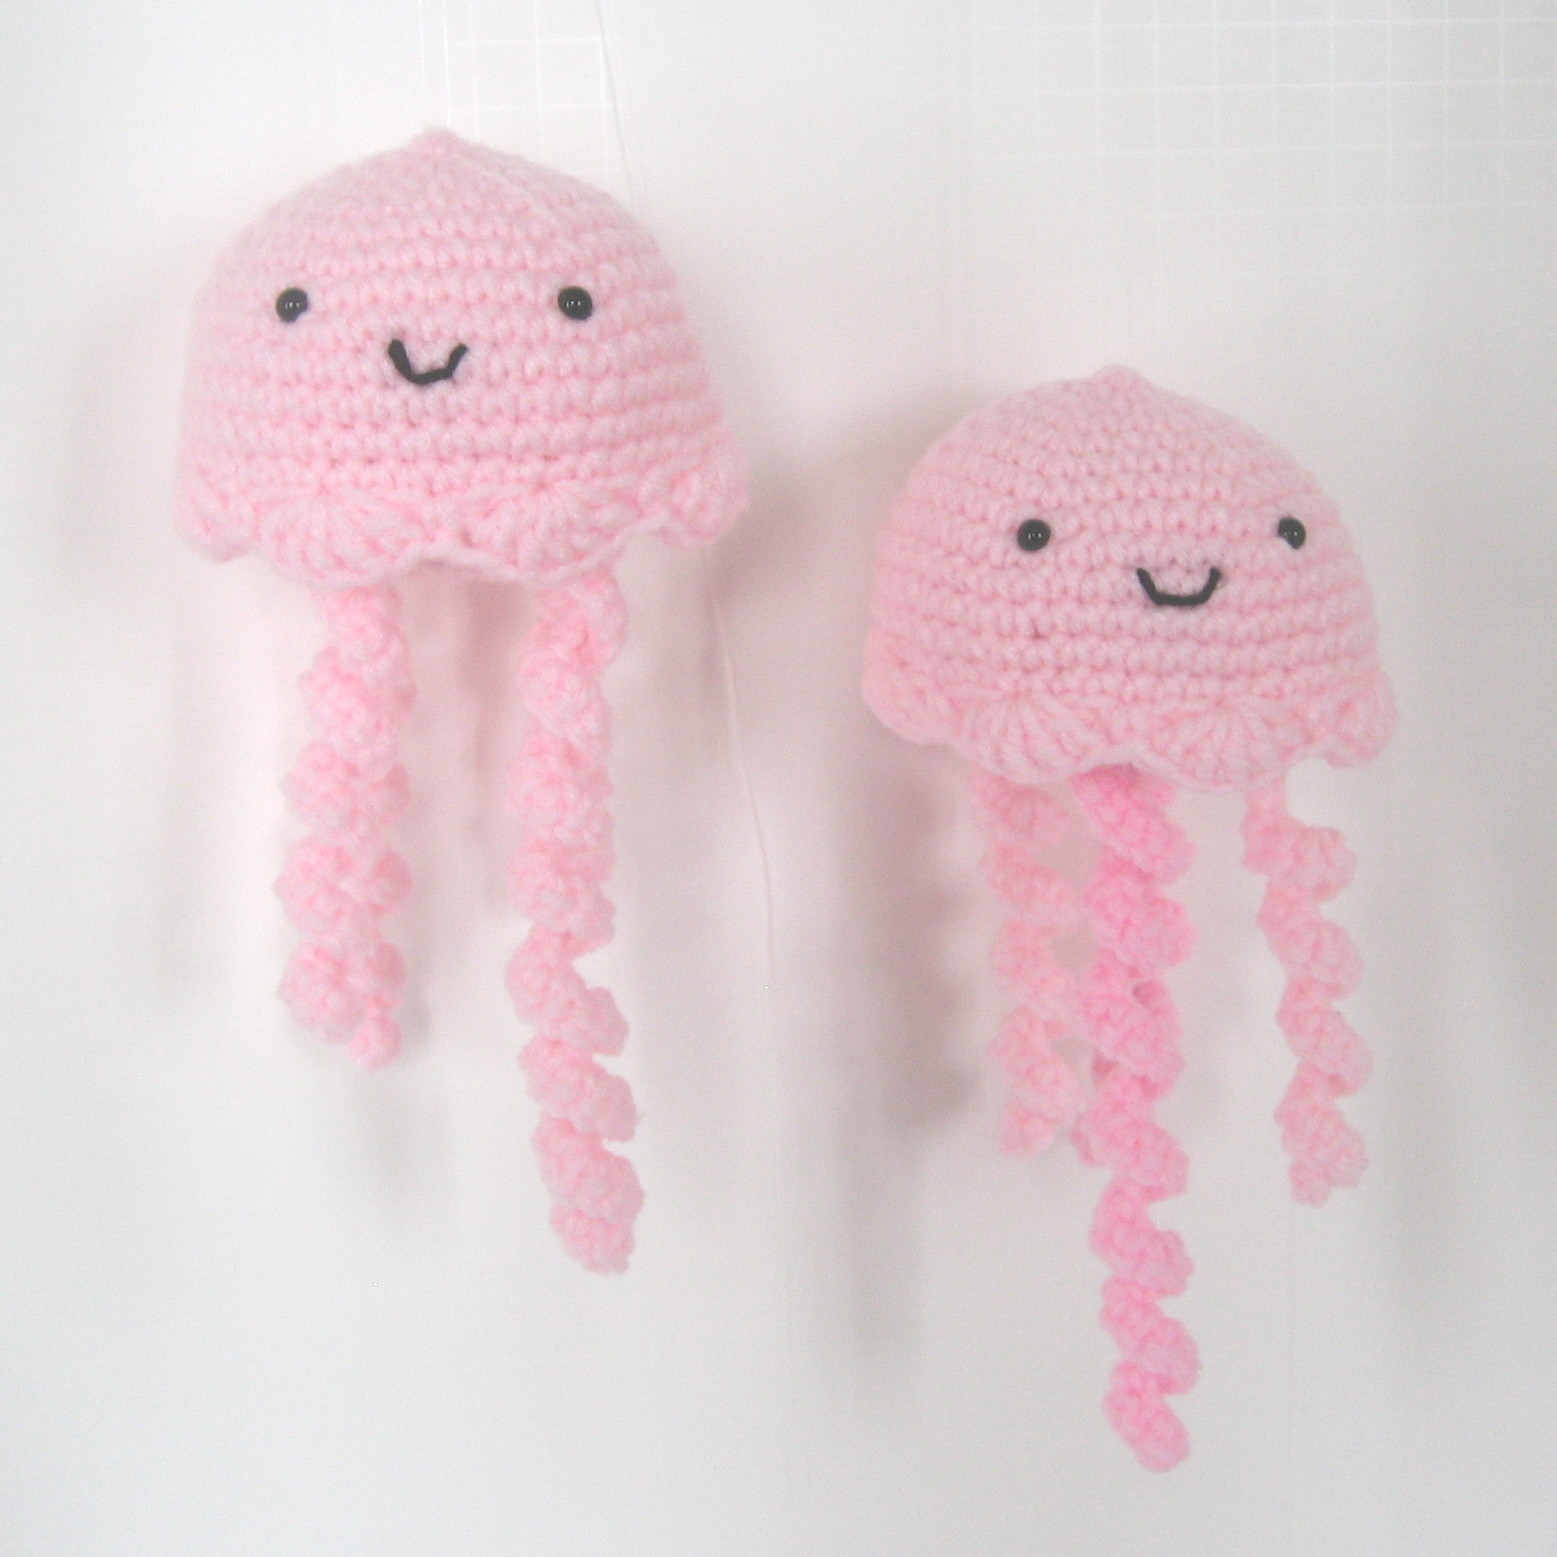 CROCHET N PLAY DESIGNS: Free Crochet Pattern: Jellyfish